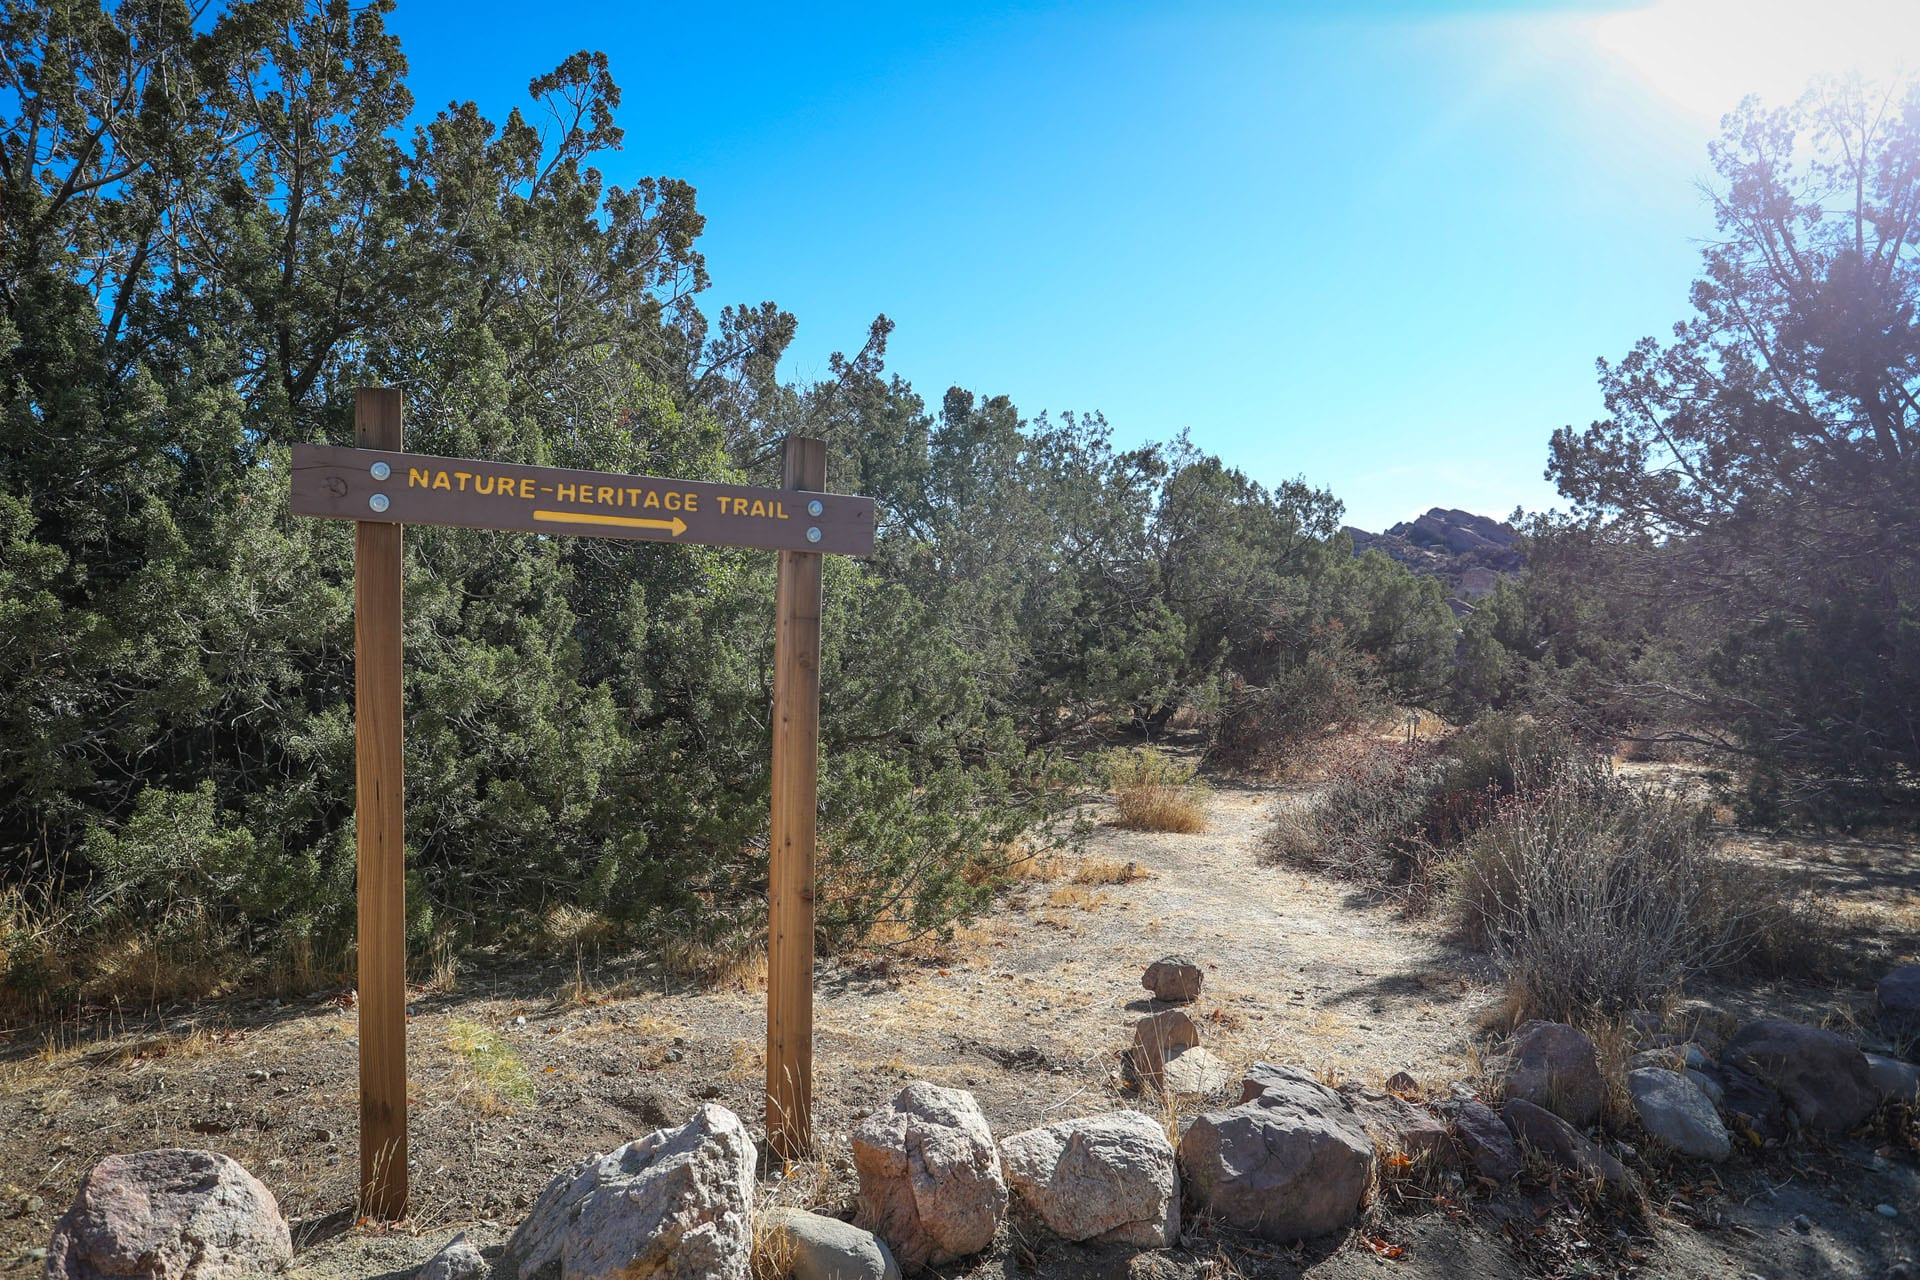 Nature Heritage Trail trailhead sign